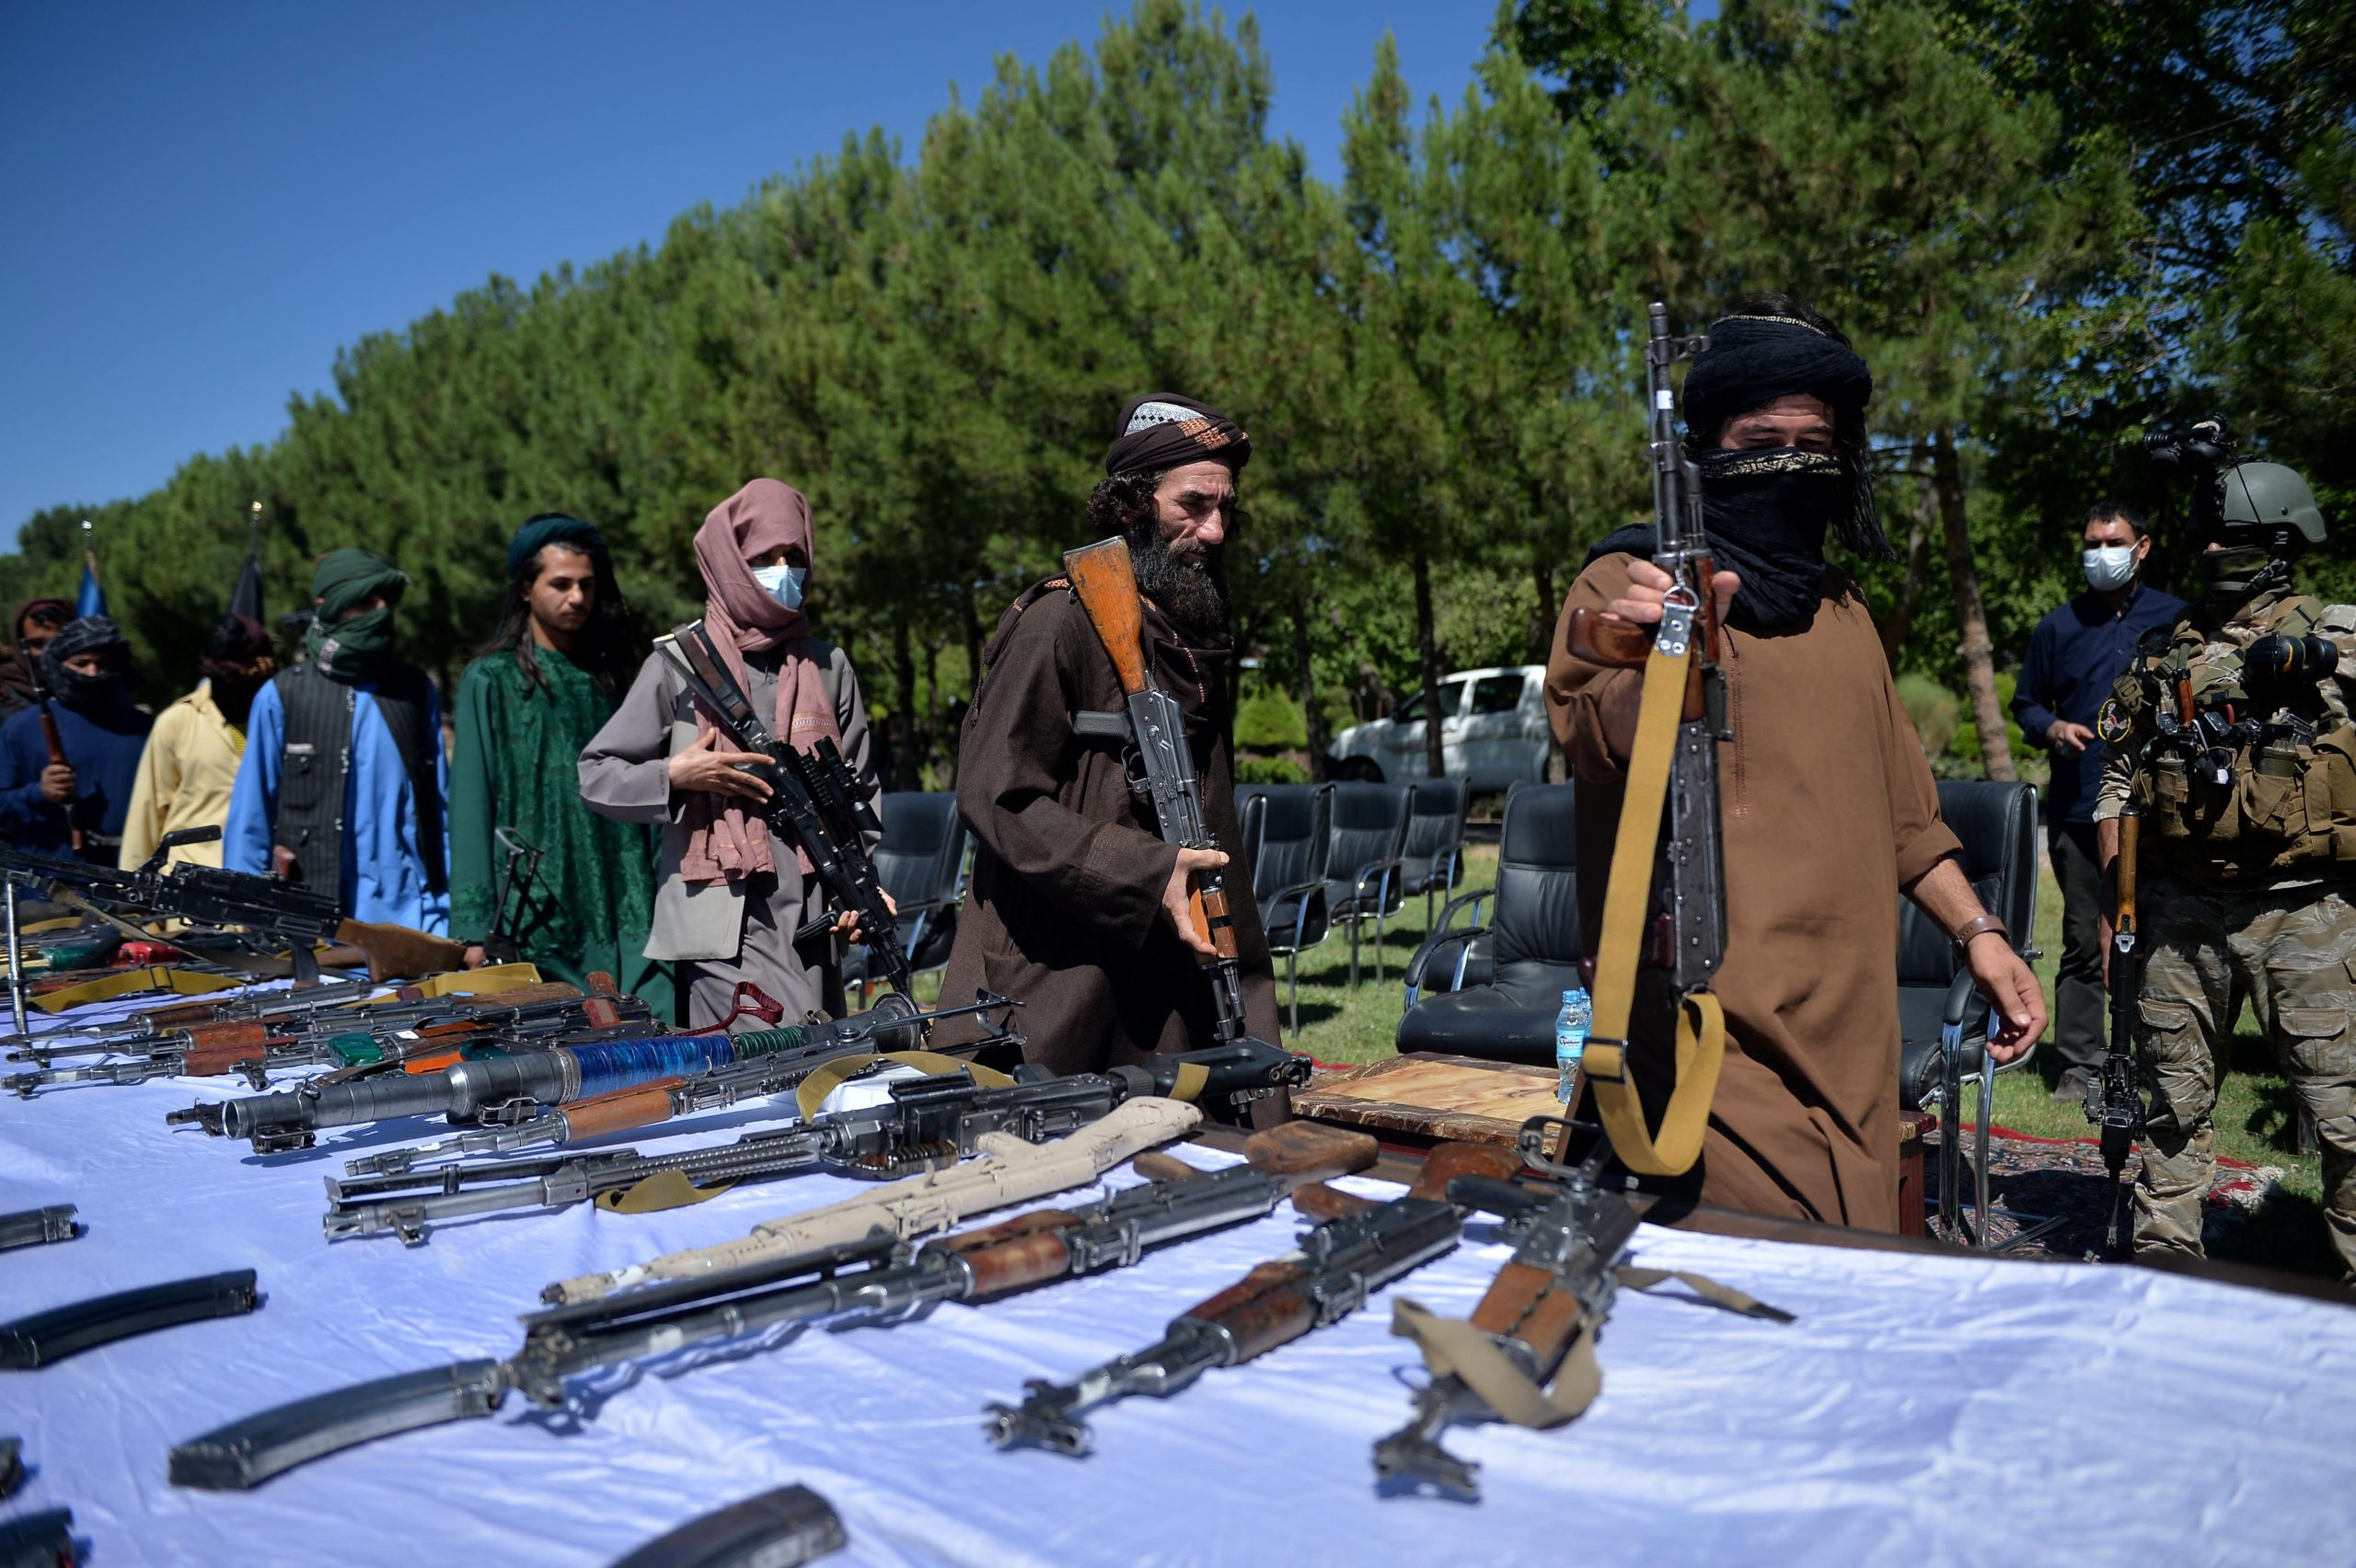 Taliban fighters put down their weapons as they surrendered to join the Afghanistan government during a ceremony in Herat on 24, 2021. (Photo by HOSHANG HASHIMIAFP via Getty Images)